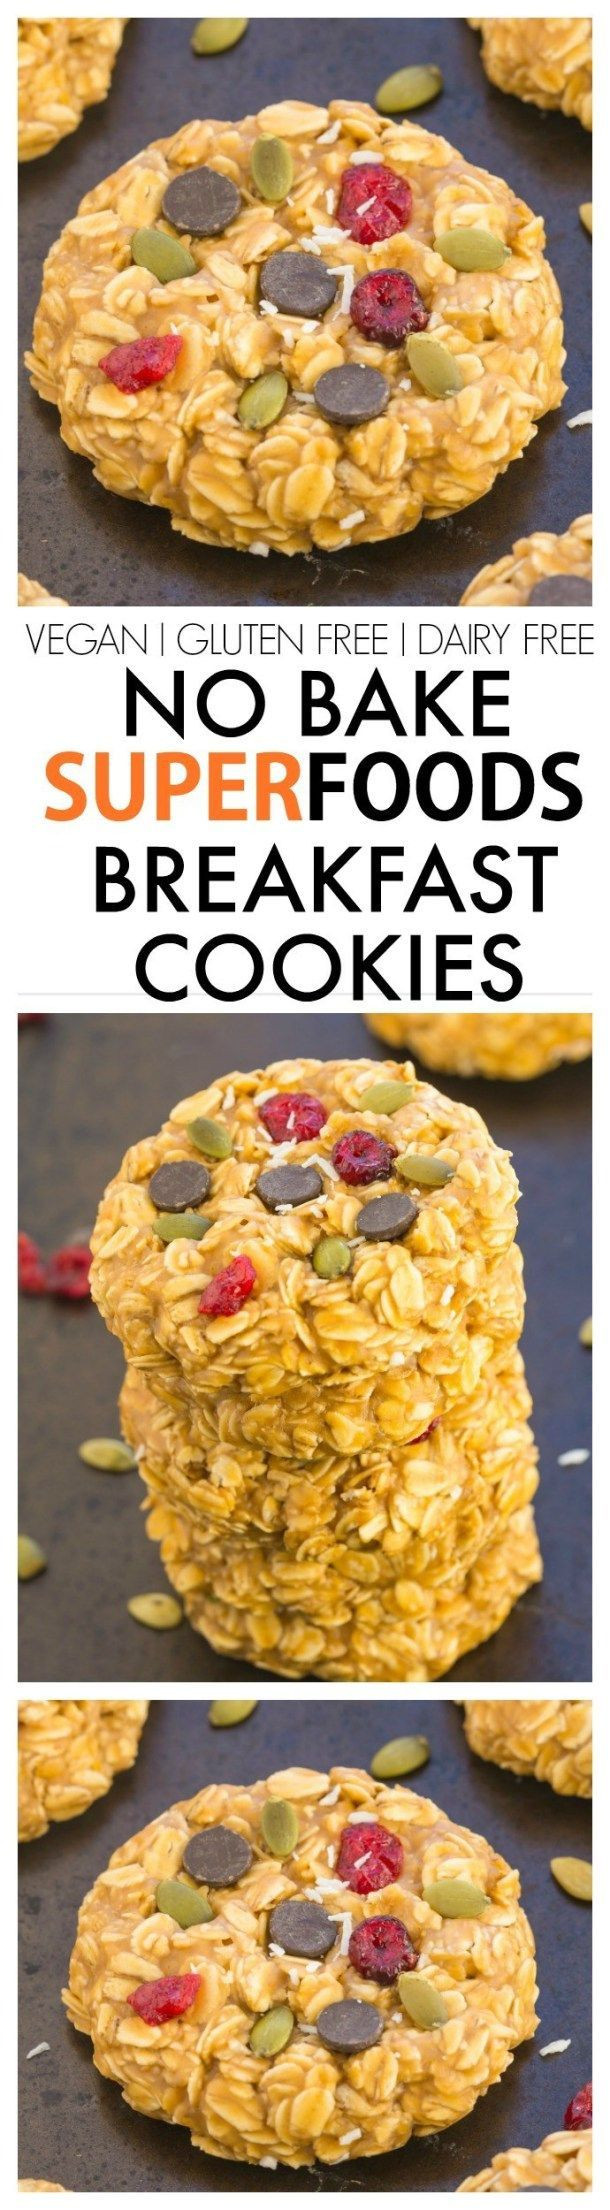 No Cook Vegetarian Recipes  Healthy Snacks and Treats Recipes The BEST and Yummiest